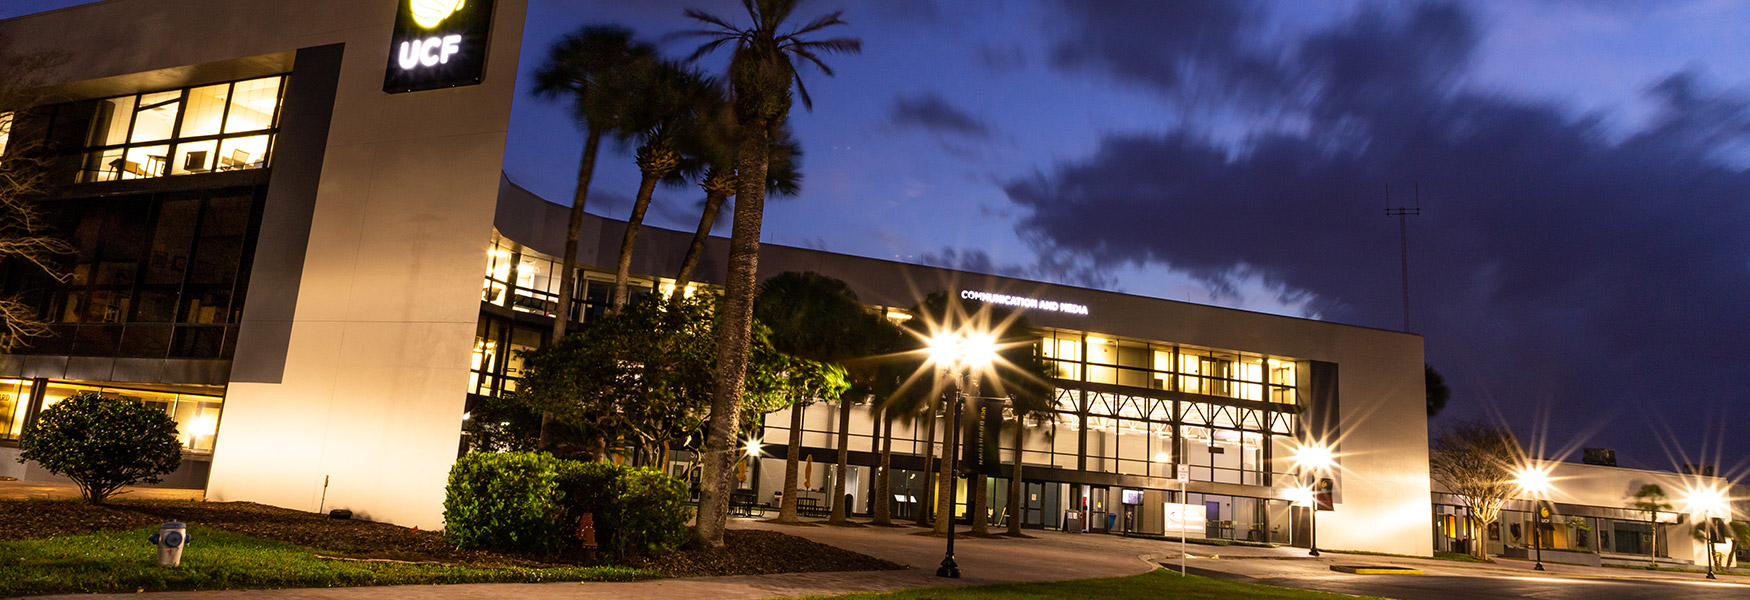 Exterior of CMB building at nightime